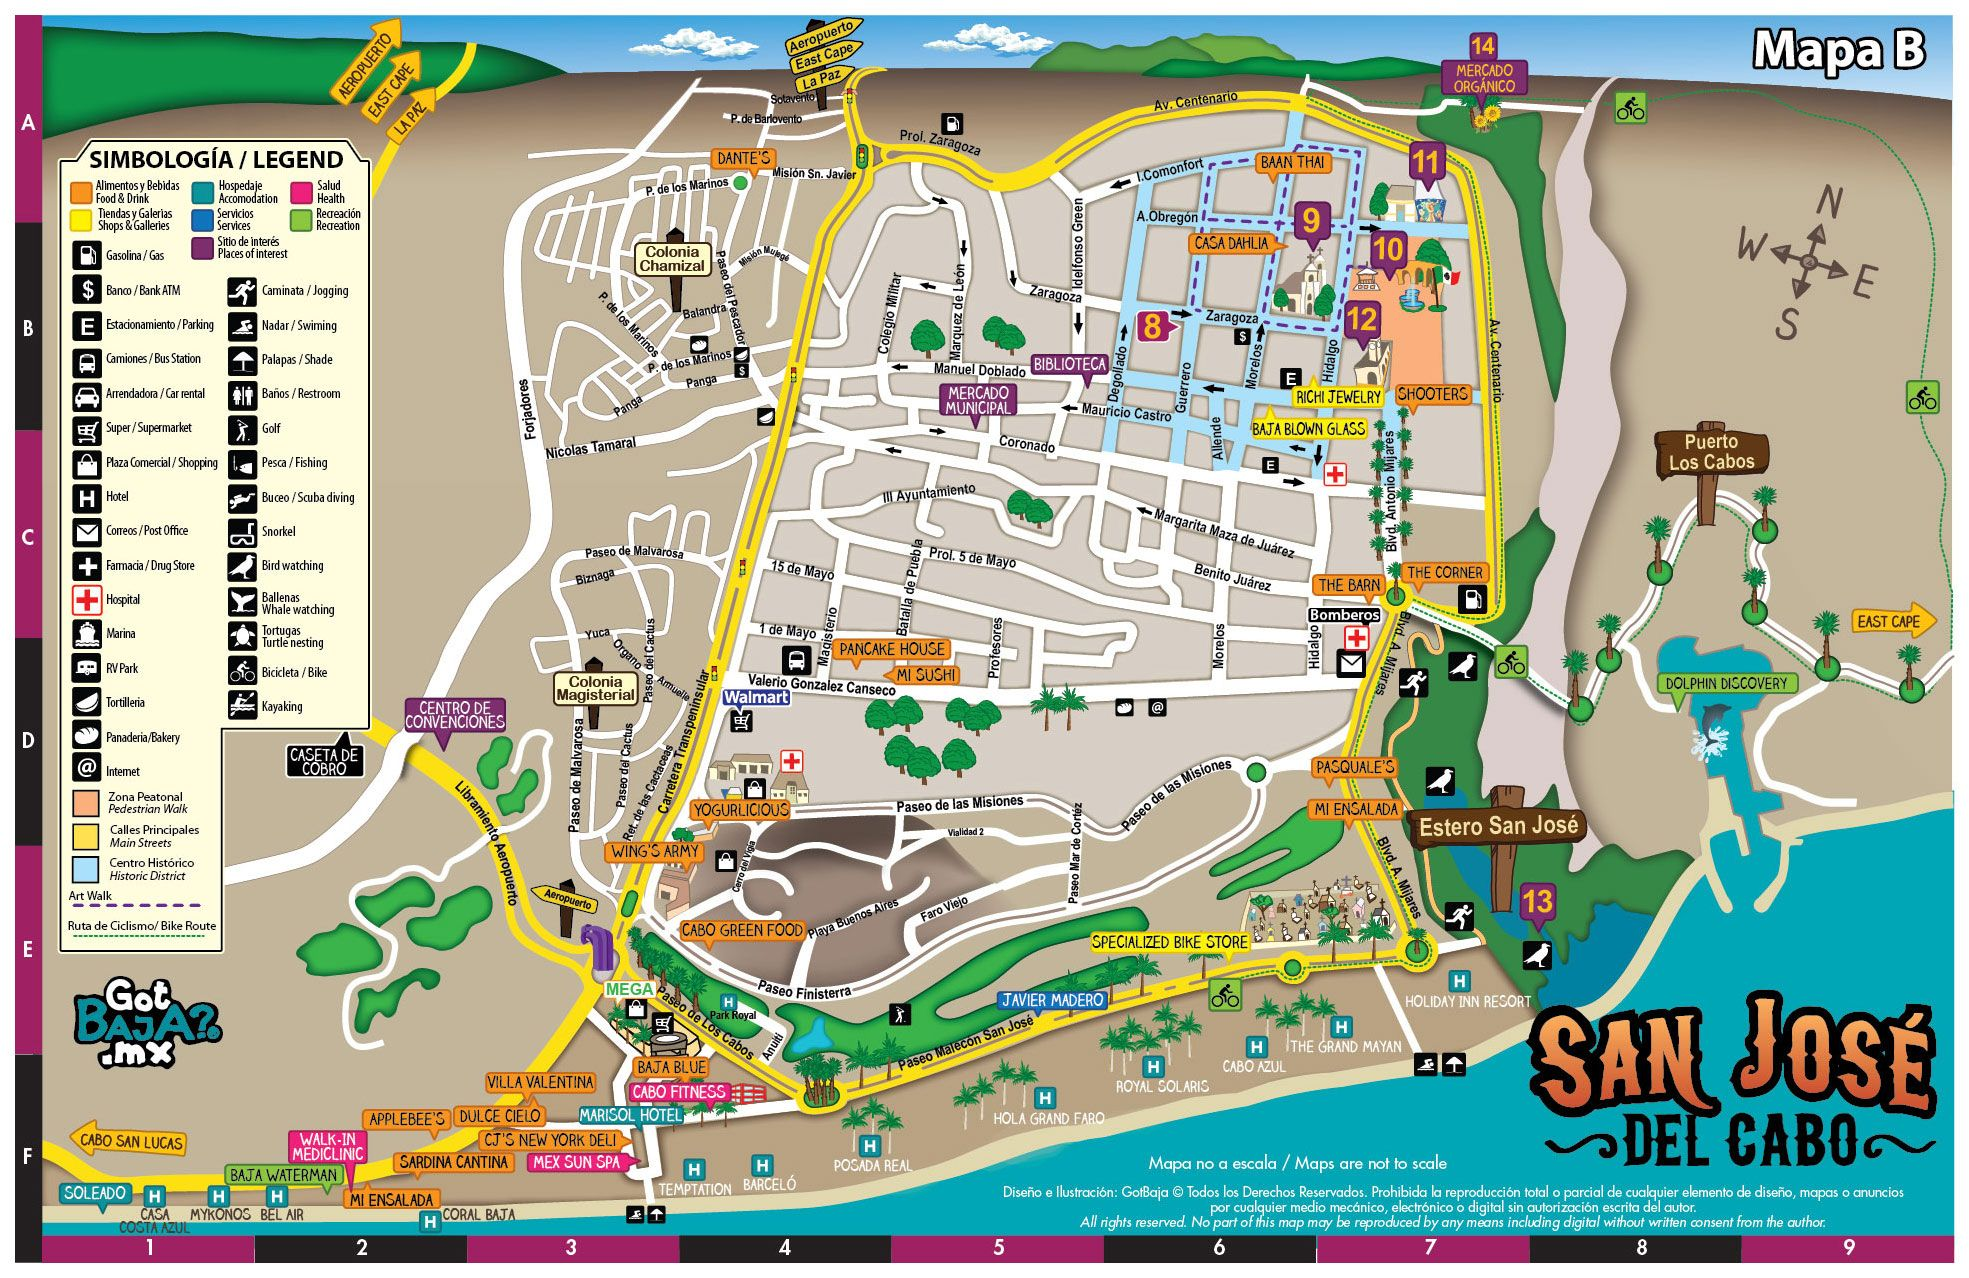 San Jose Del Cabo Mexico Map.Map Of The City Of San Jose Del Cabo Travel In 2019 Pinterest